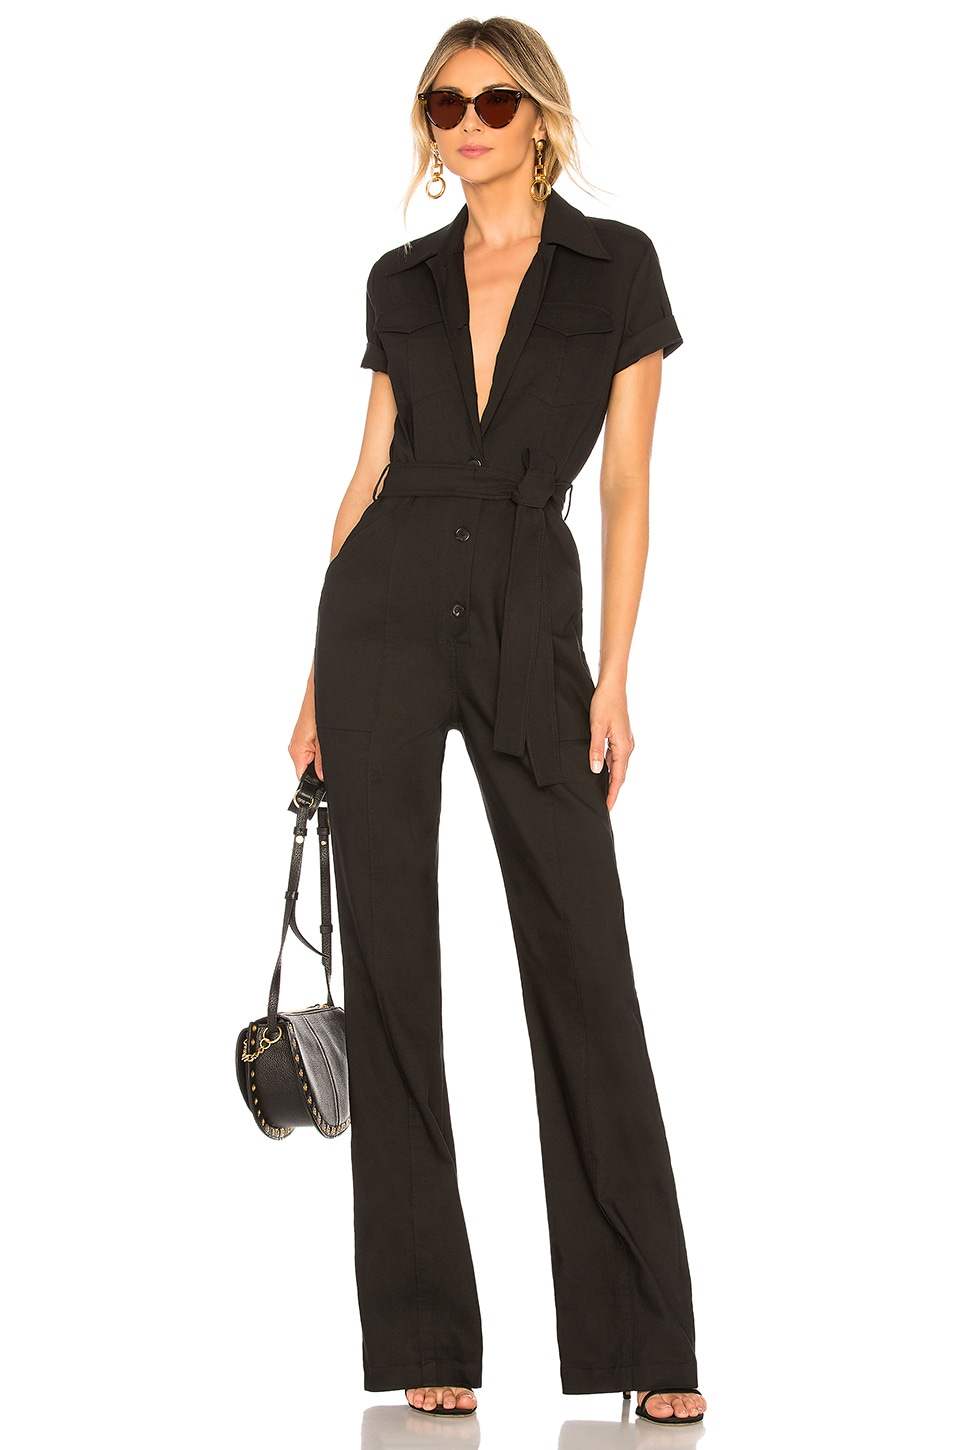 A.L.C. Rivington Jumpsuit in Black